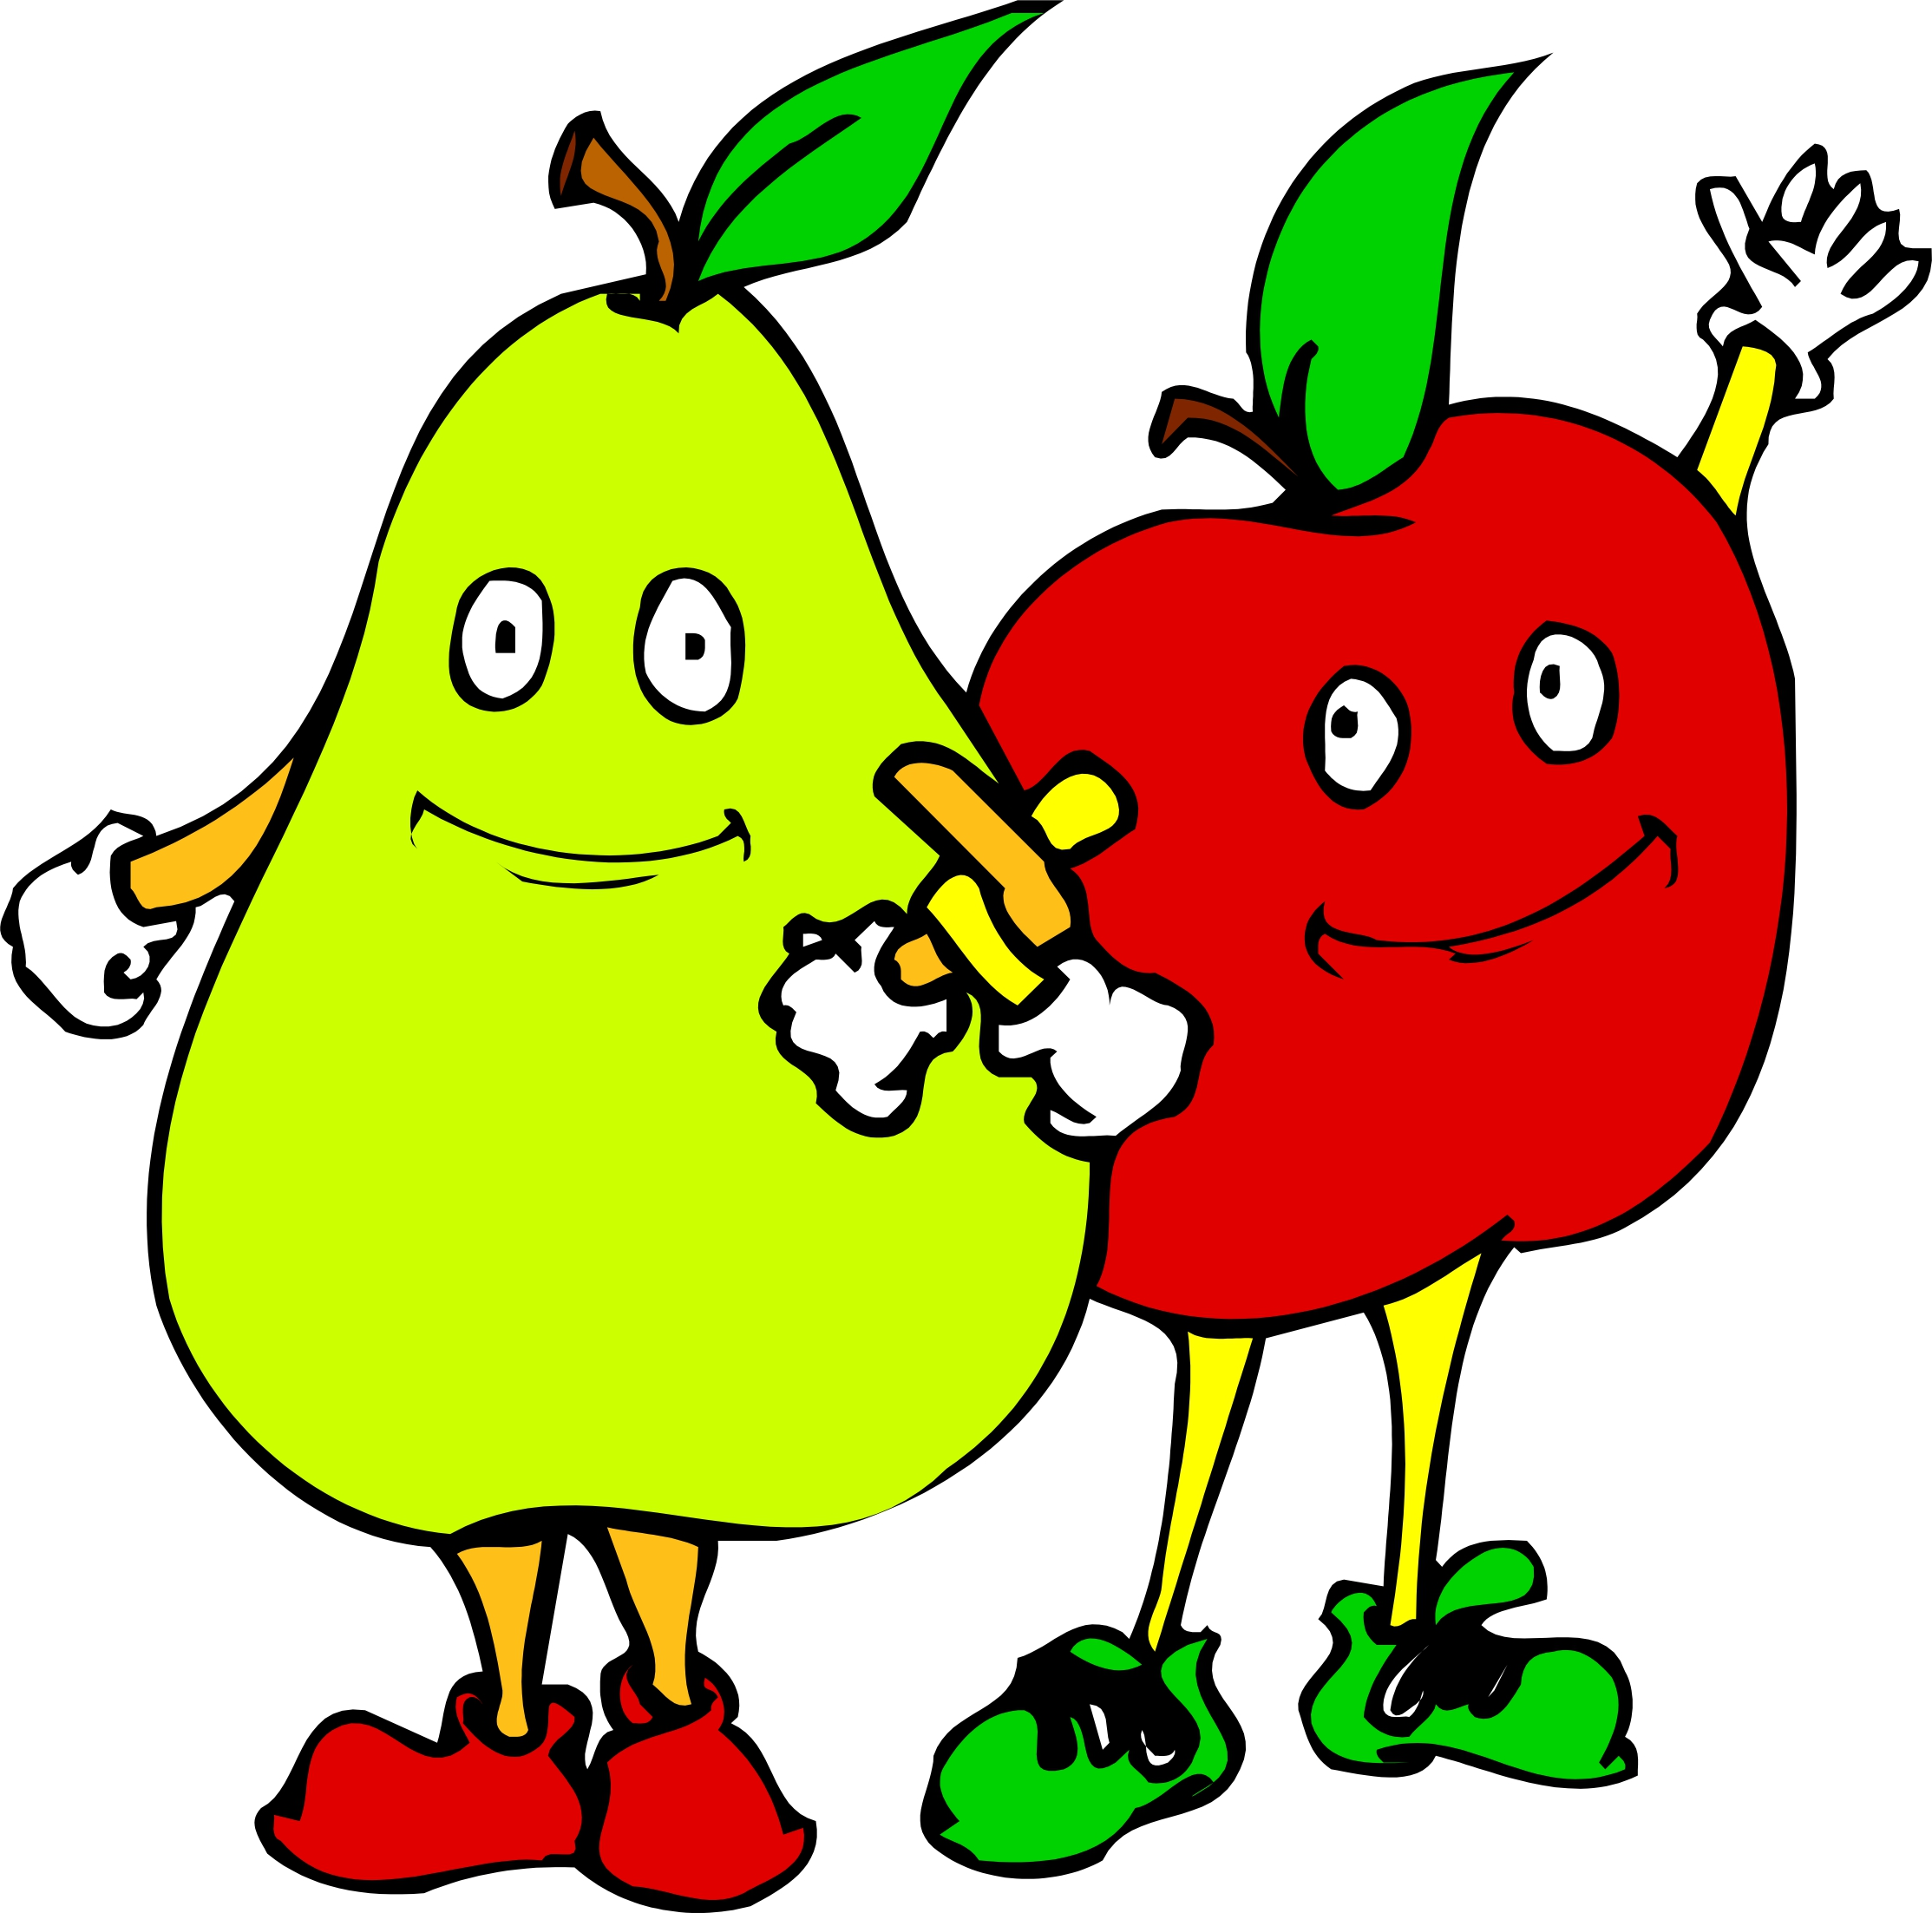 Fruits Cartoon Pictures - ClipArt Best